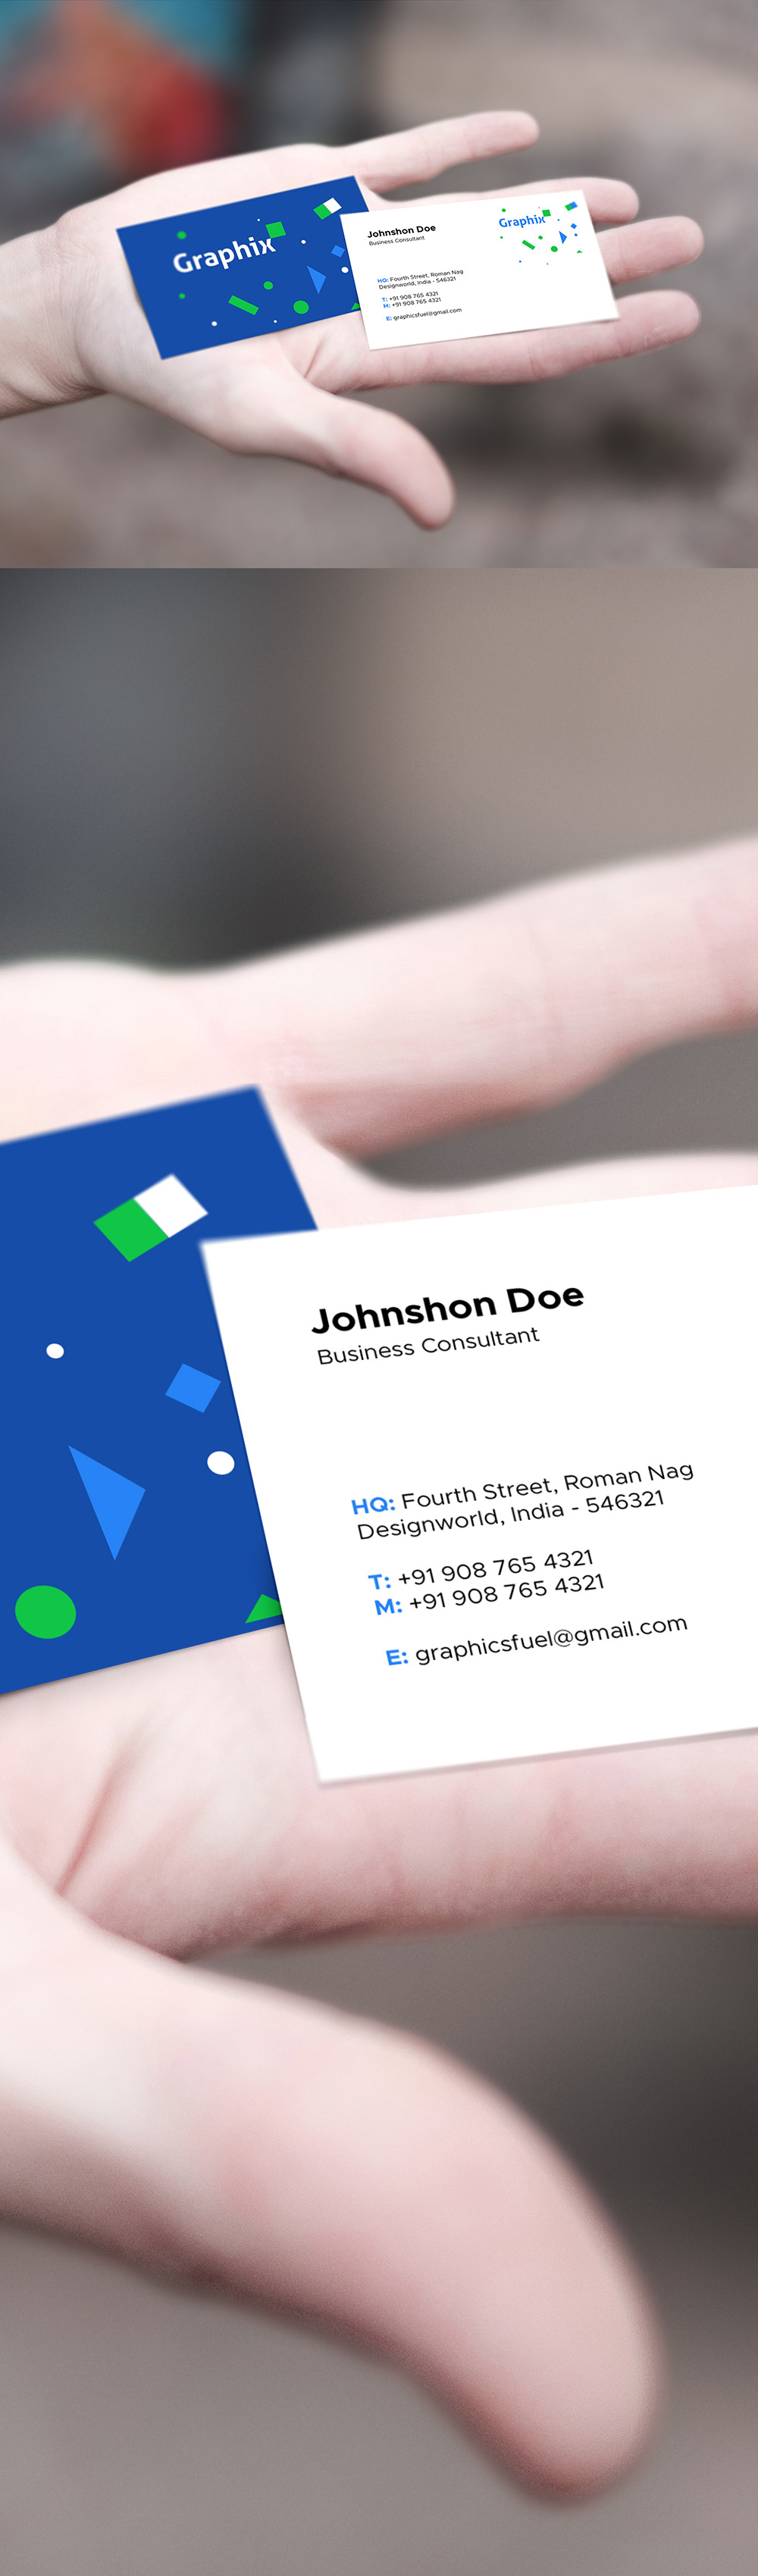 Business Card In Hand Mockup - GraphicsFuel